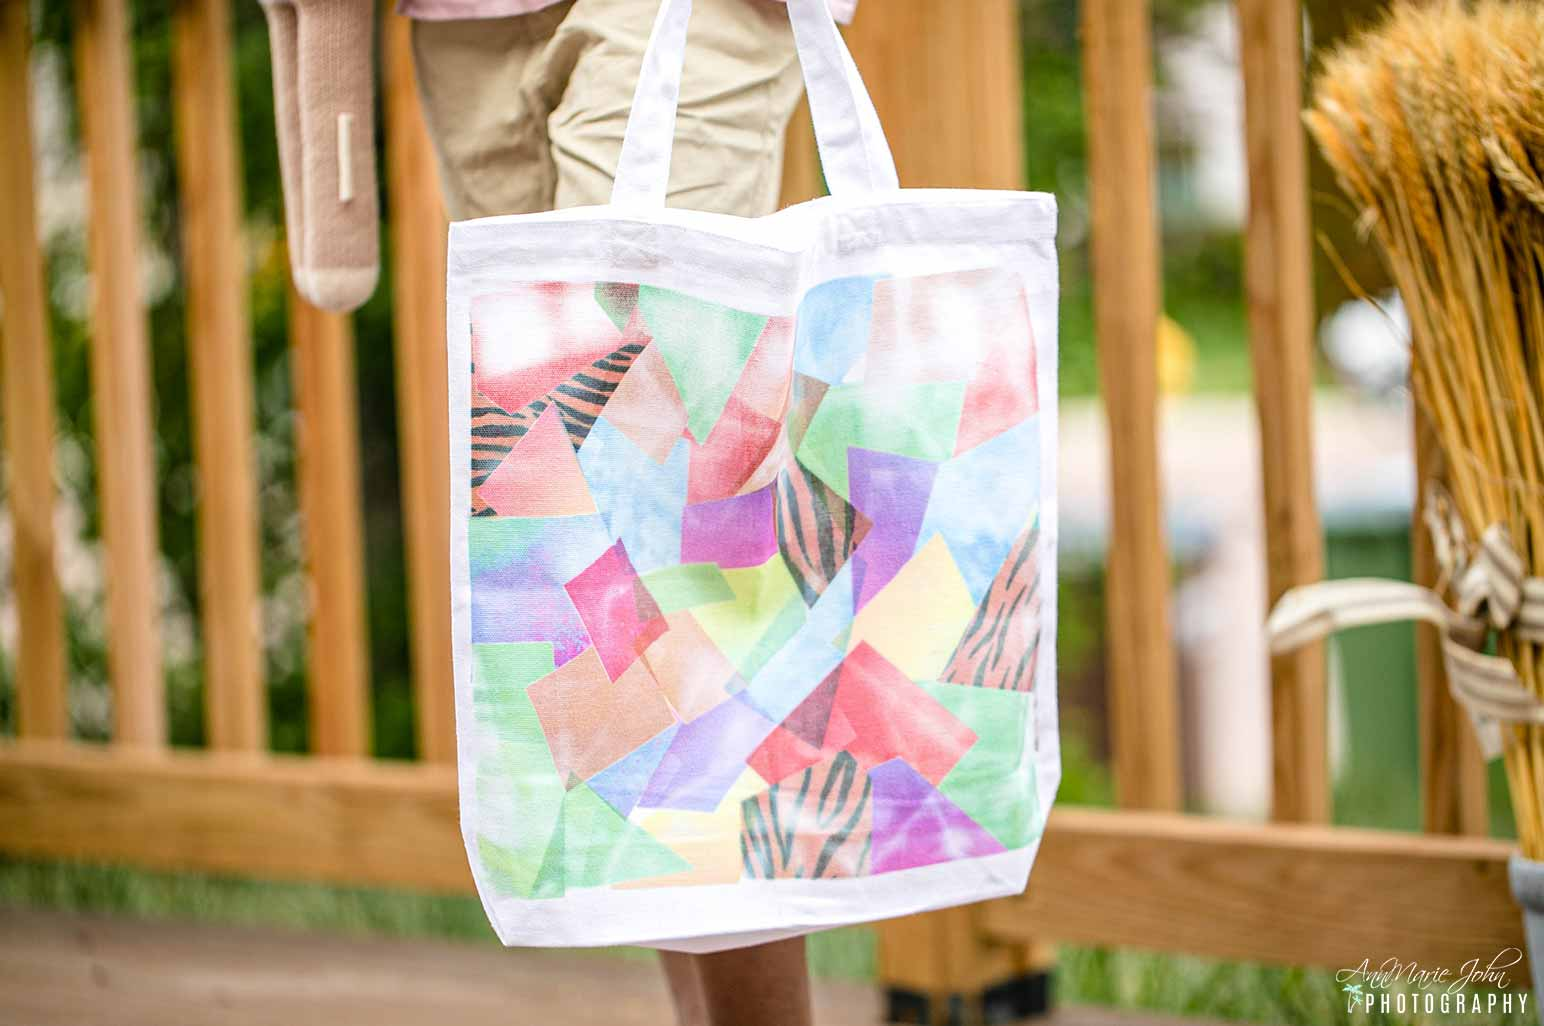 Hot Mess Tie-Dye Tote Made With Cricut Infusible Ink Scraps